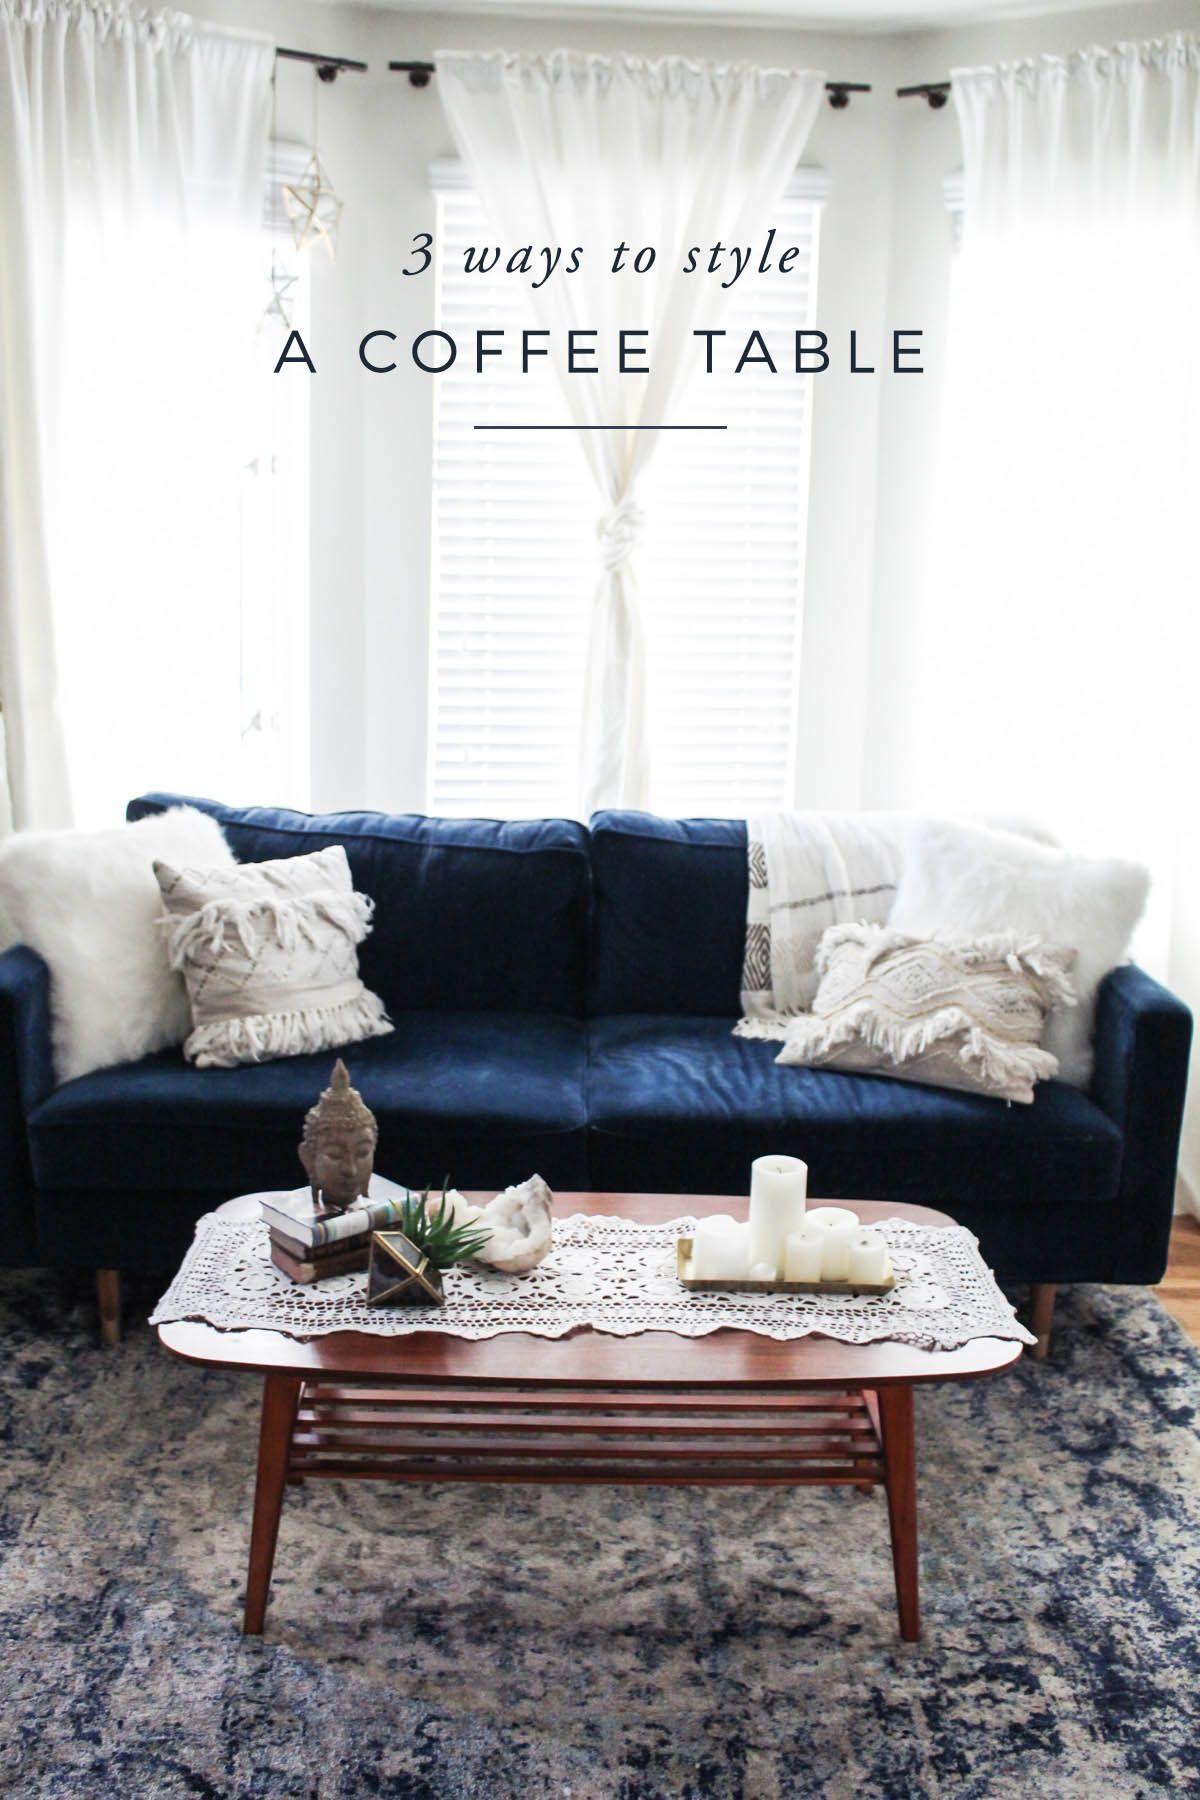 3 ways to style a coffee table Living Home Decor